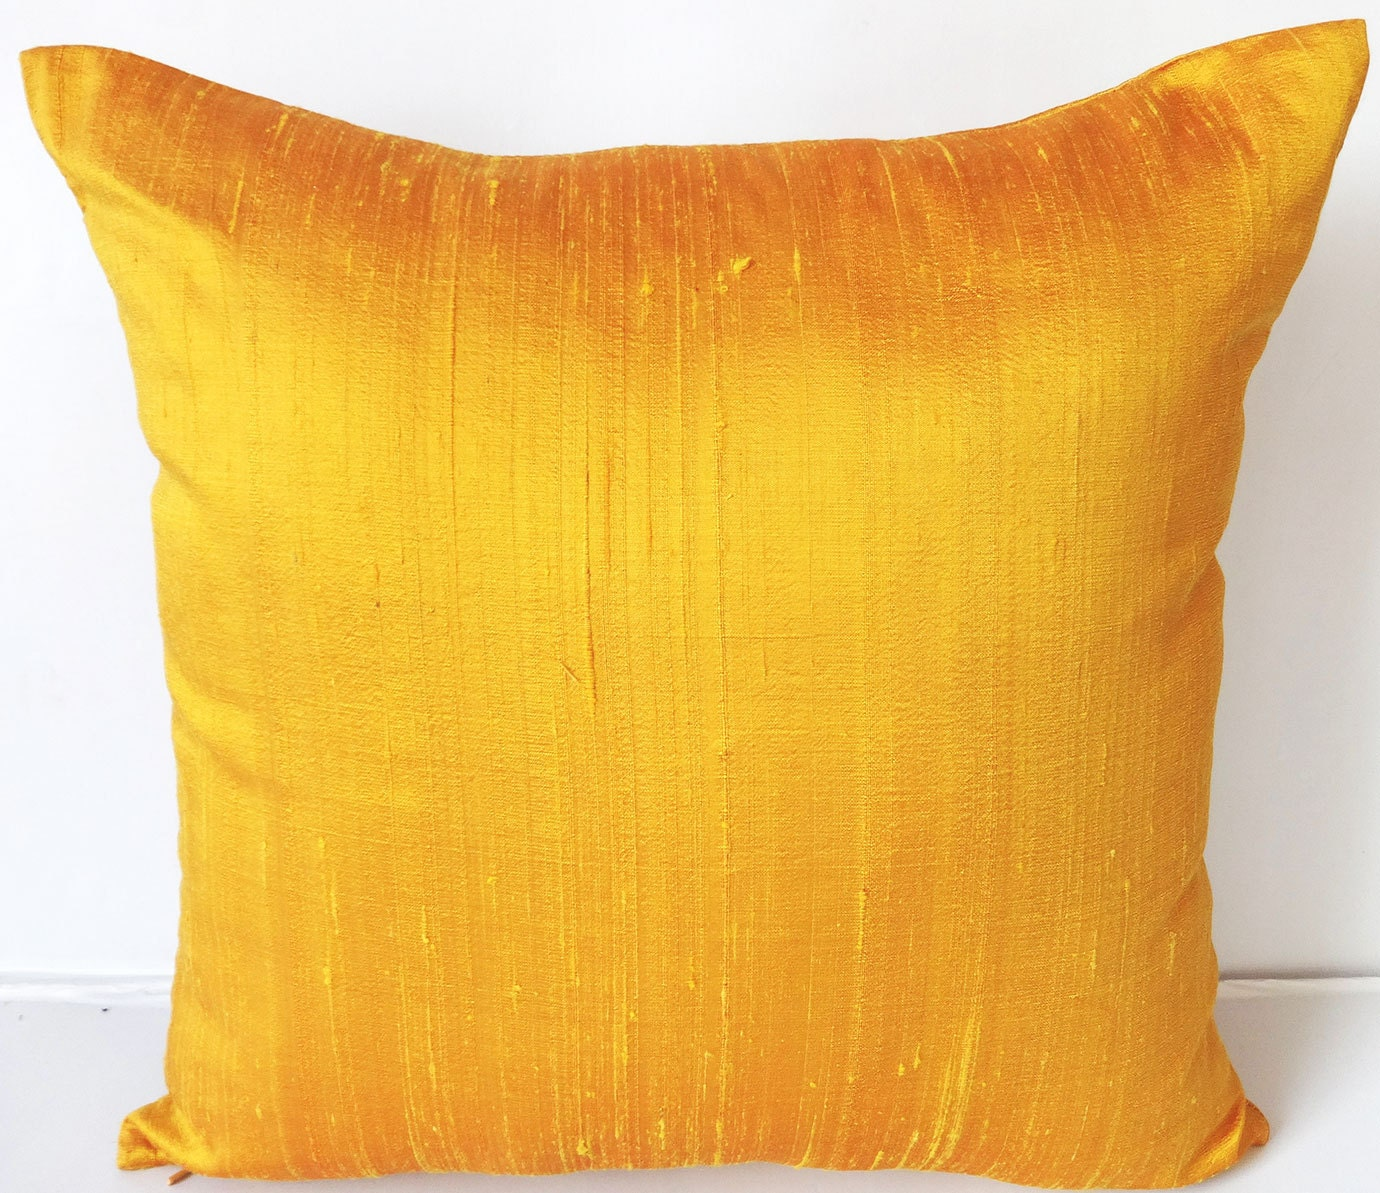 Sun set yellow dupioni silk throw pillow. shiny bright